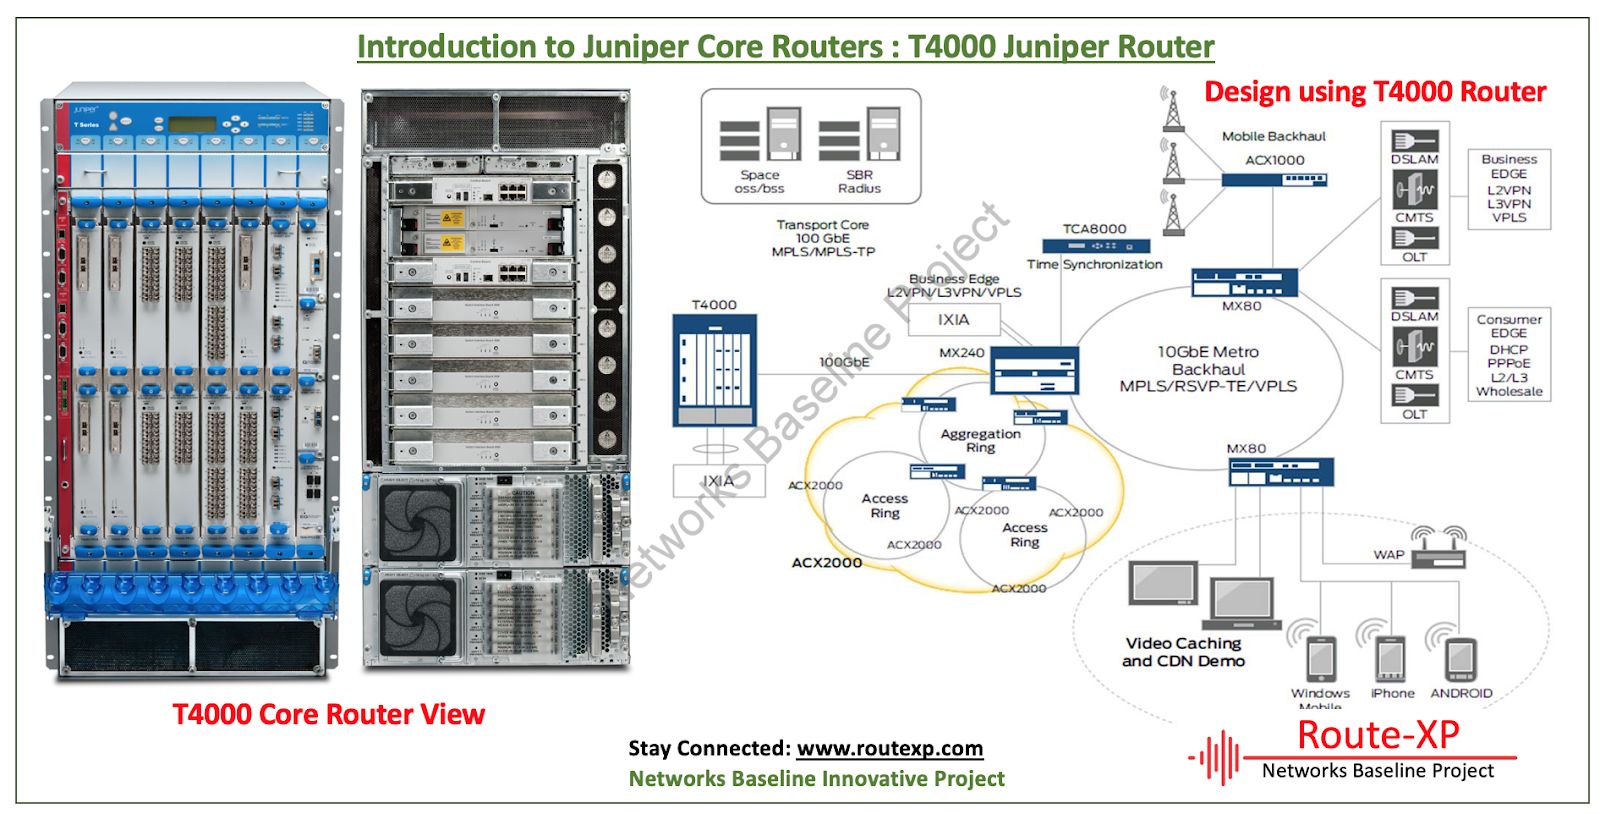 Introduction to Juniper T4000 Core Router for Service Providers